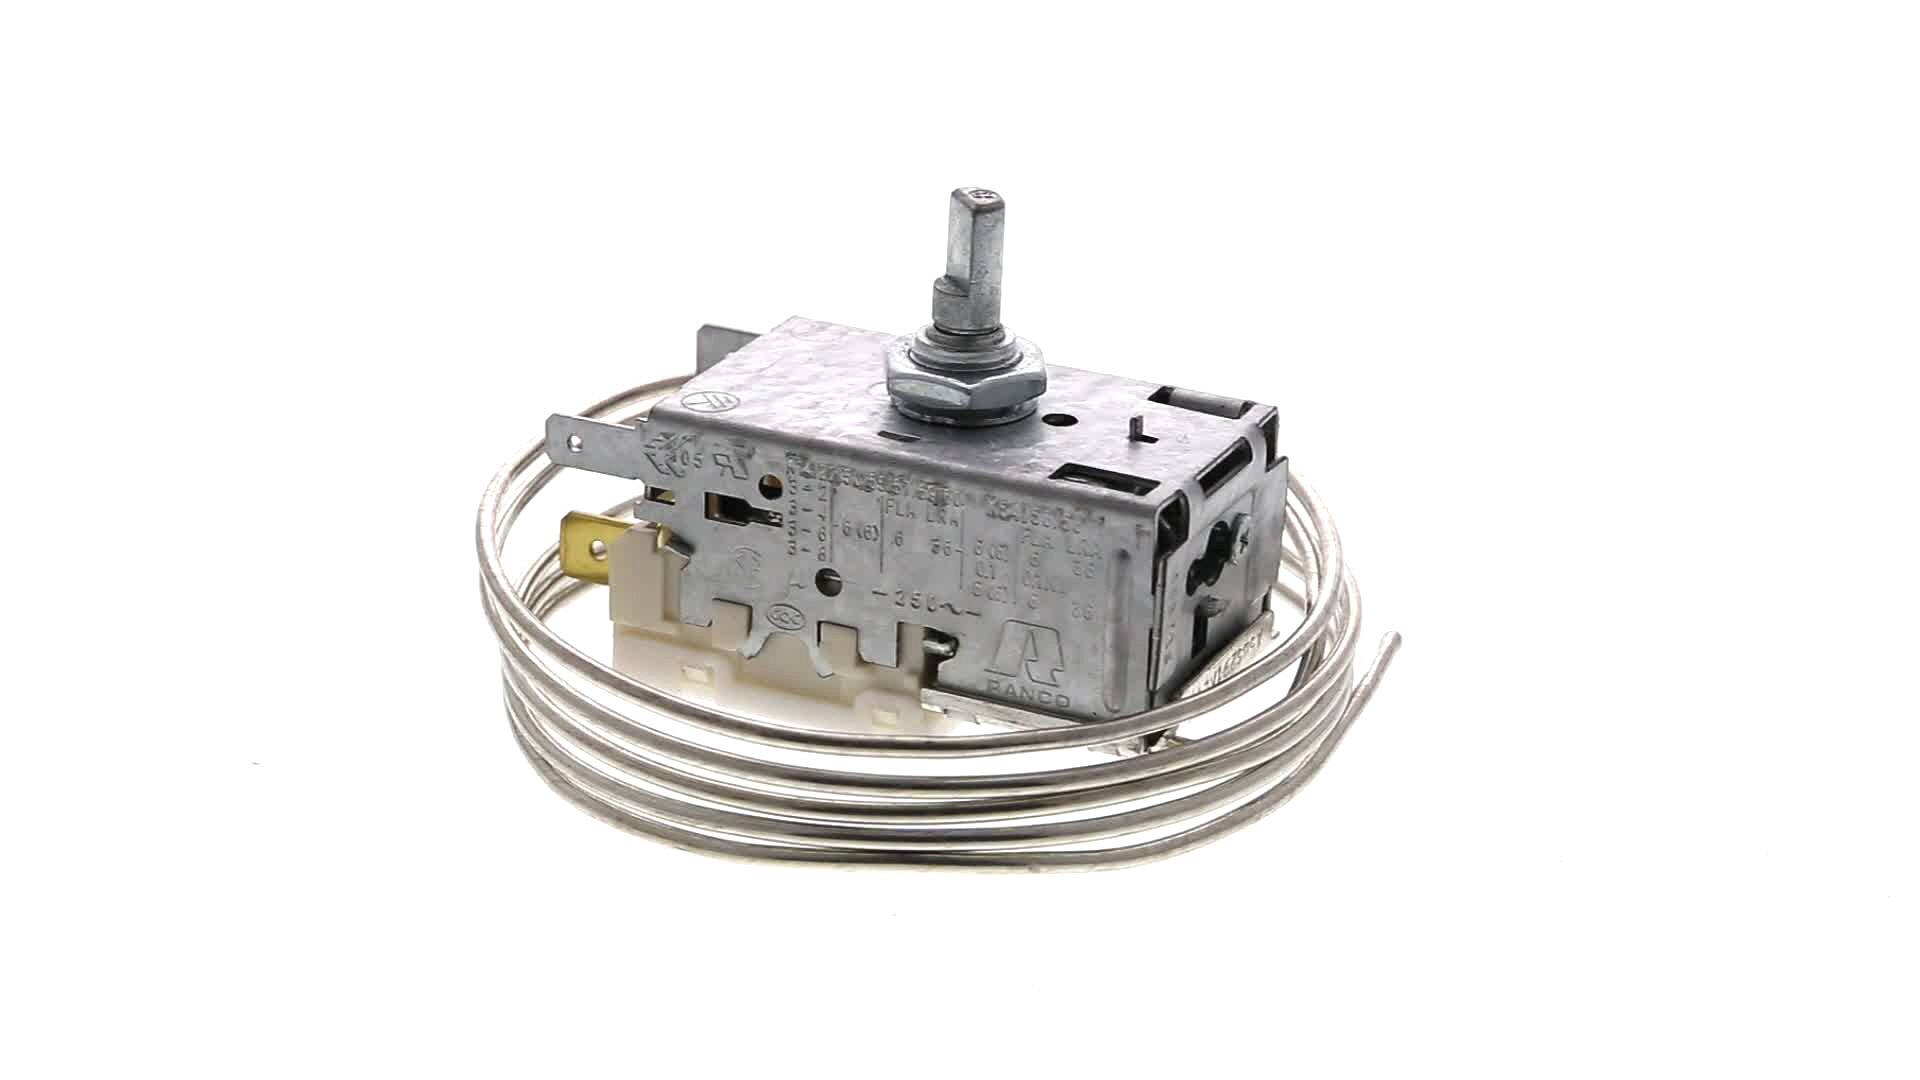 THERMOSTAT FROID 077B6839 K59L4145 - 2